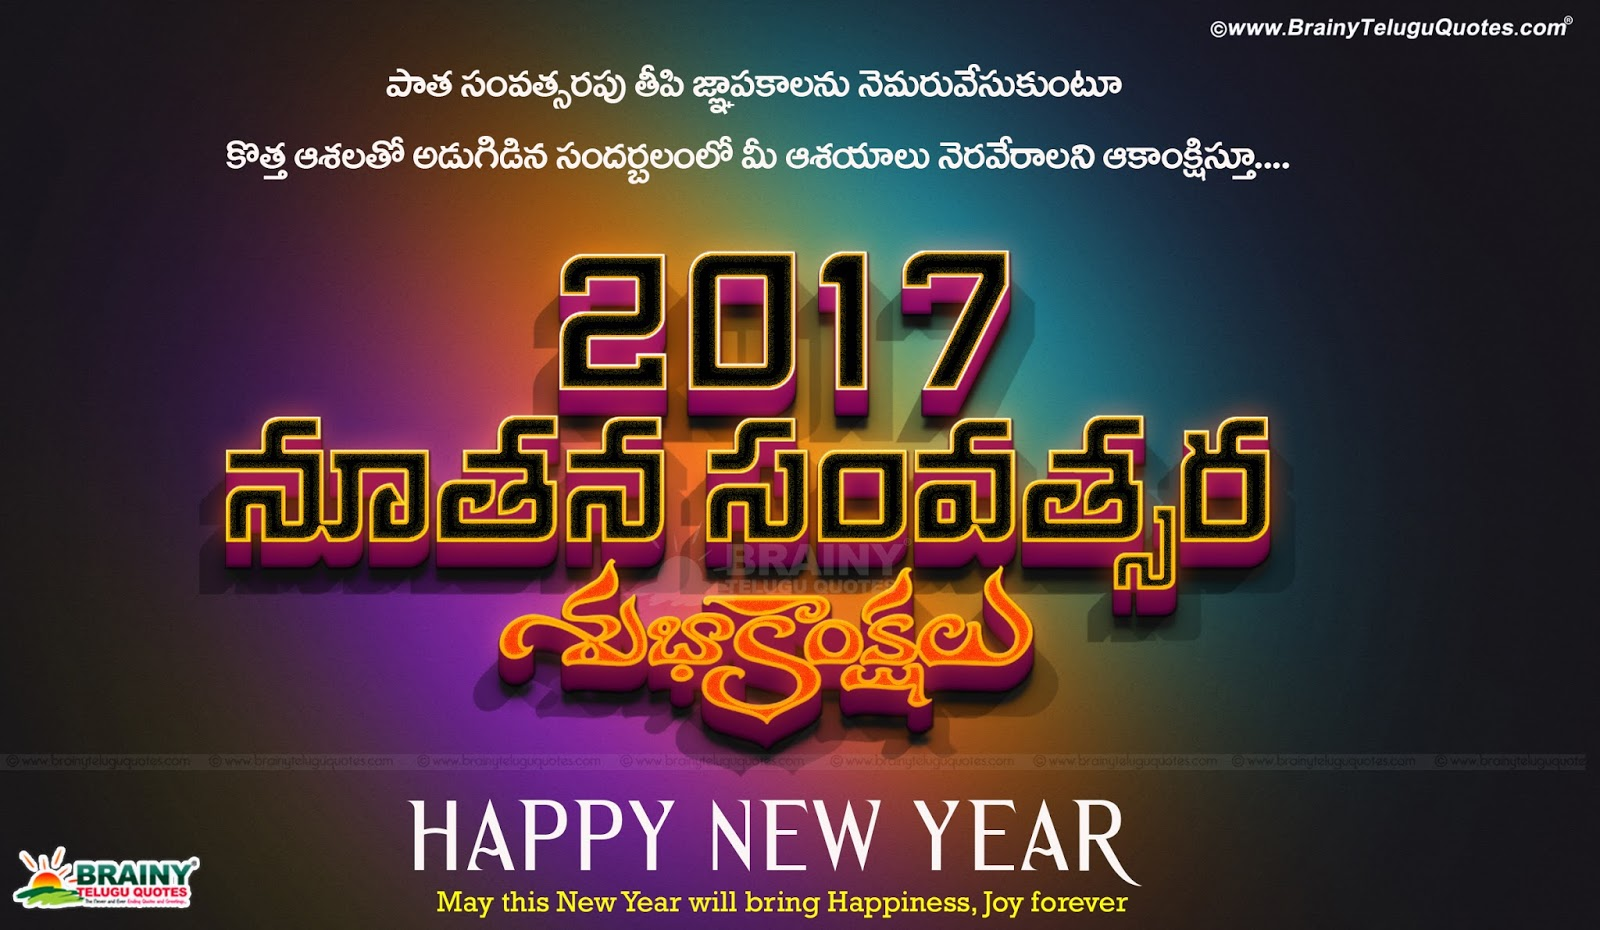 Inspirational happy new year 2017 quotes greetings in telugu in 3d happy new year 2017 greetings in telugu telugu new year greetings for facebook status new year inspirational greetings for sister brother new year wishes kristyandbryce Images